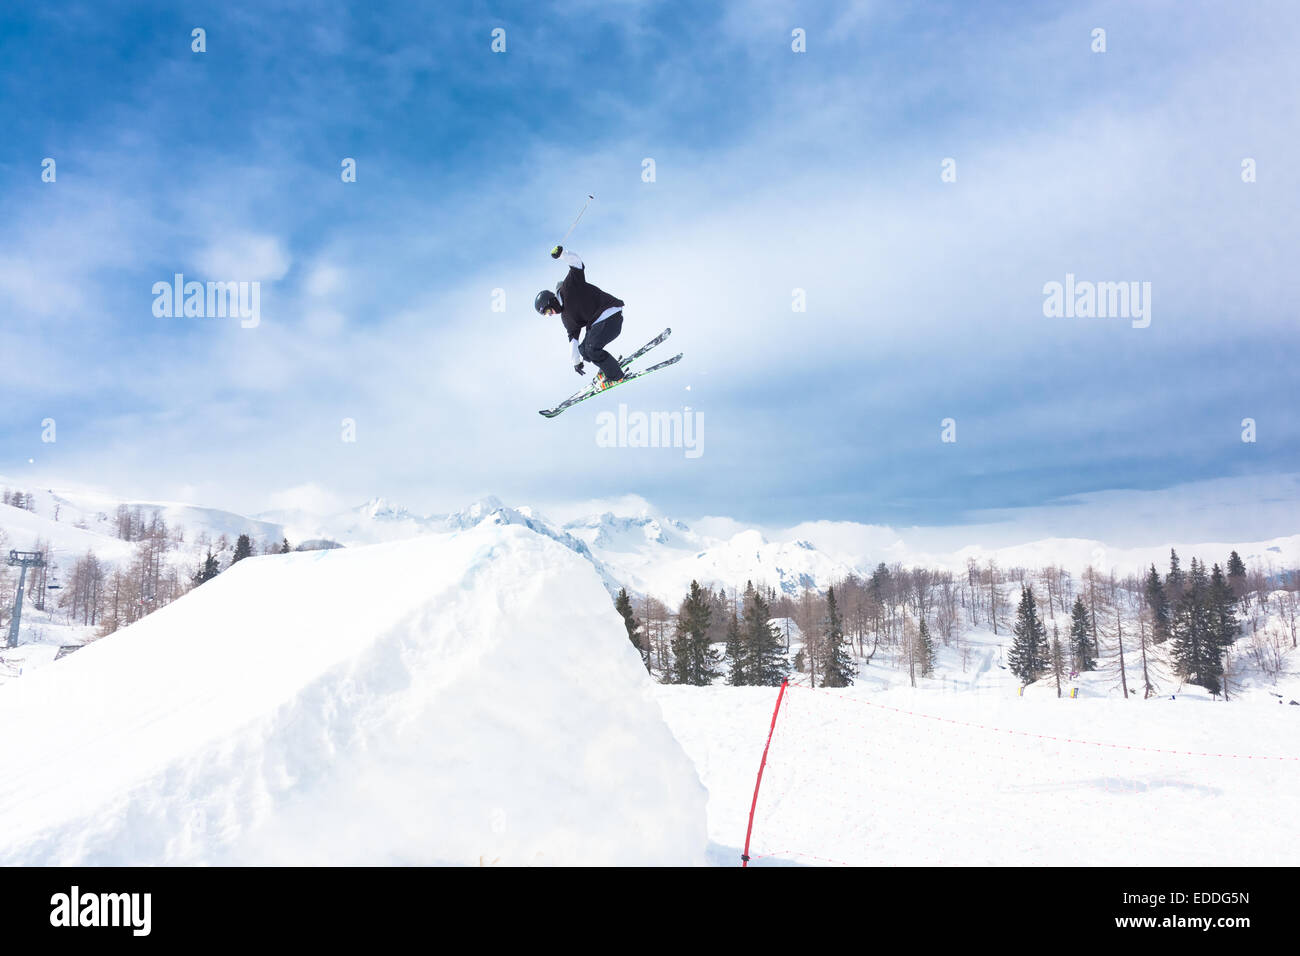 Free style skier performing a high jump - Stock Image